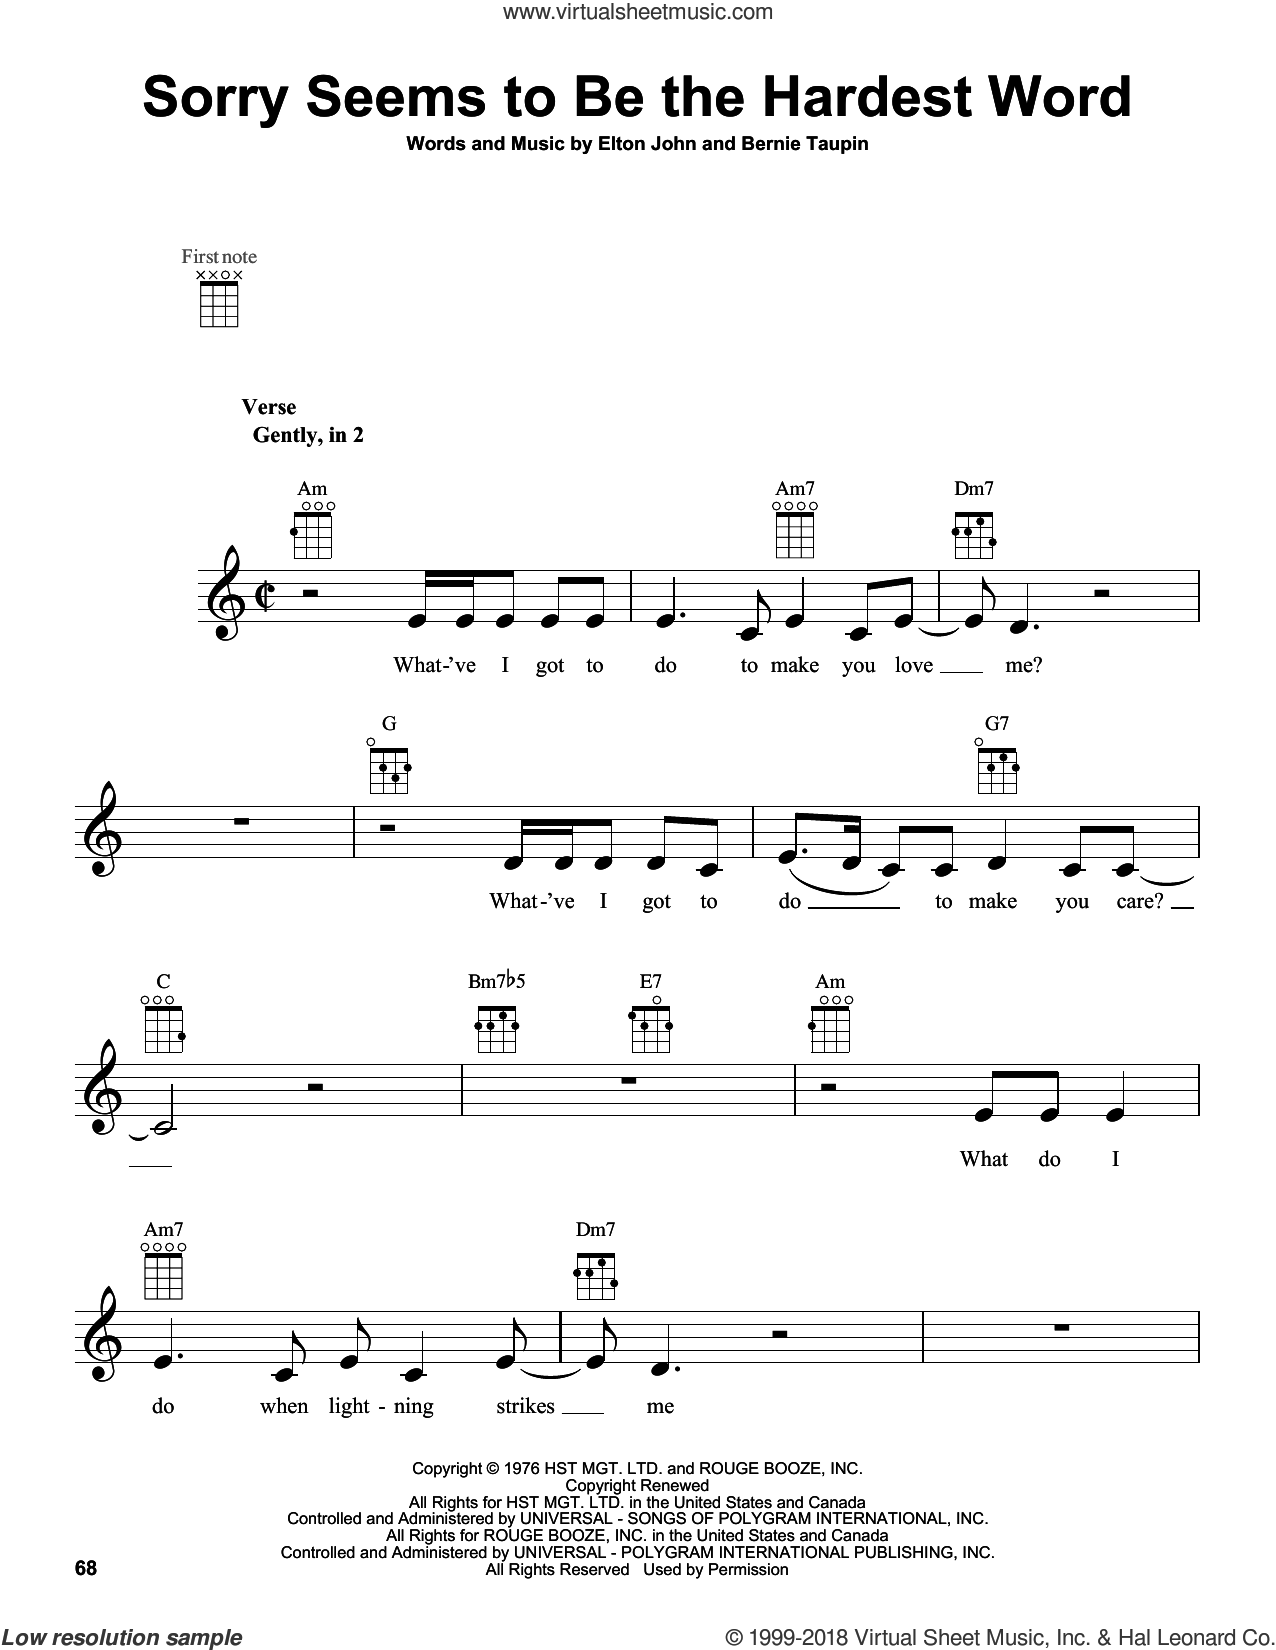 Sorry Seems To Be The Hardest Word sheet music for ukulele by Elton John